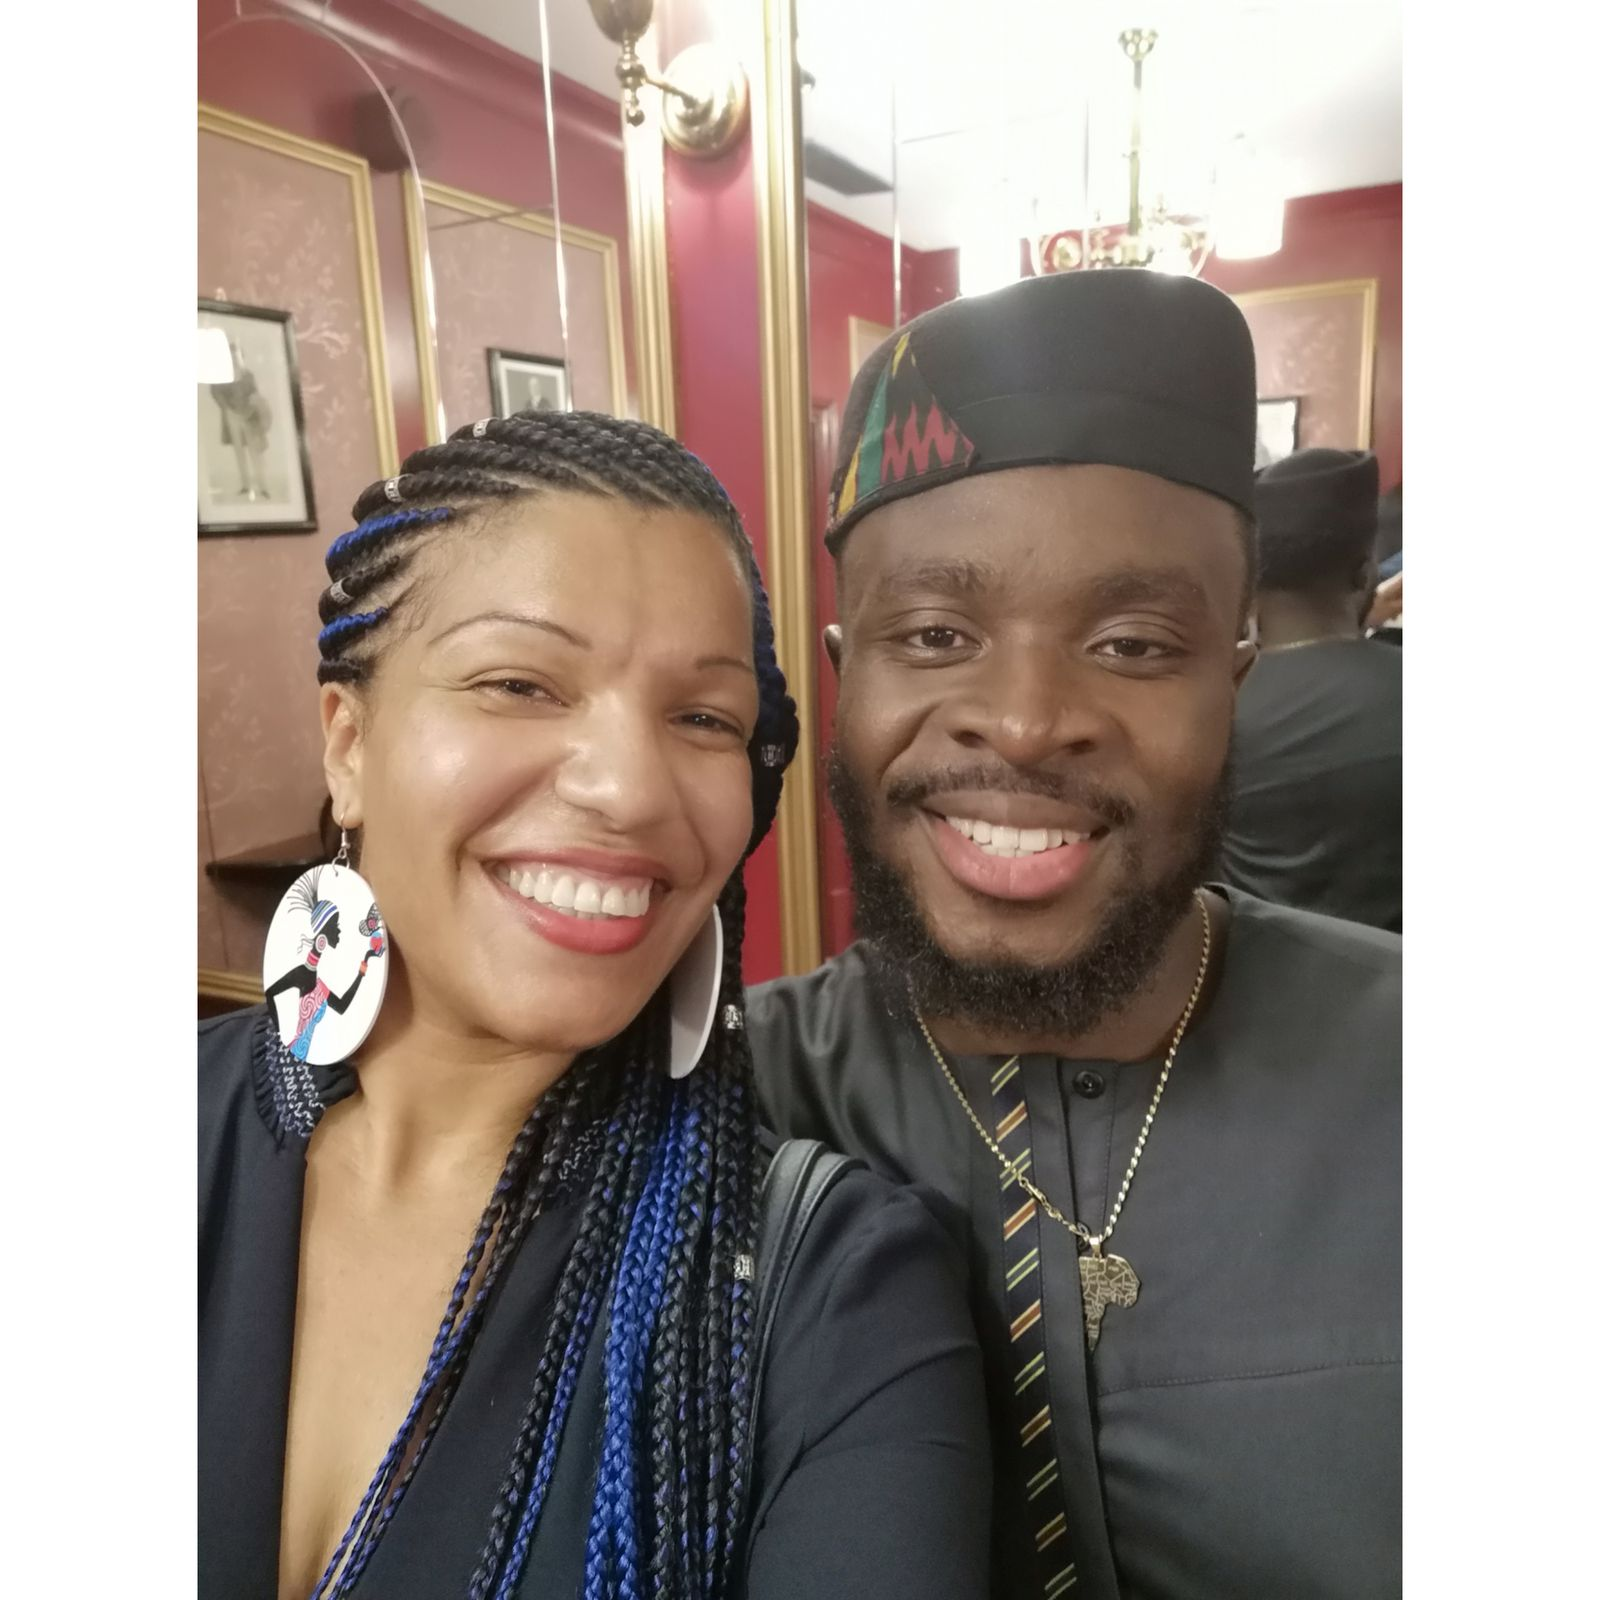 Our cultural mediator, Caro Sika, got a selfie snapshot with FUSE ODG at the latest Black Magic Awards.